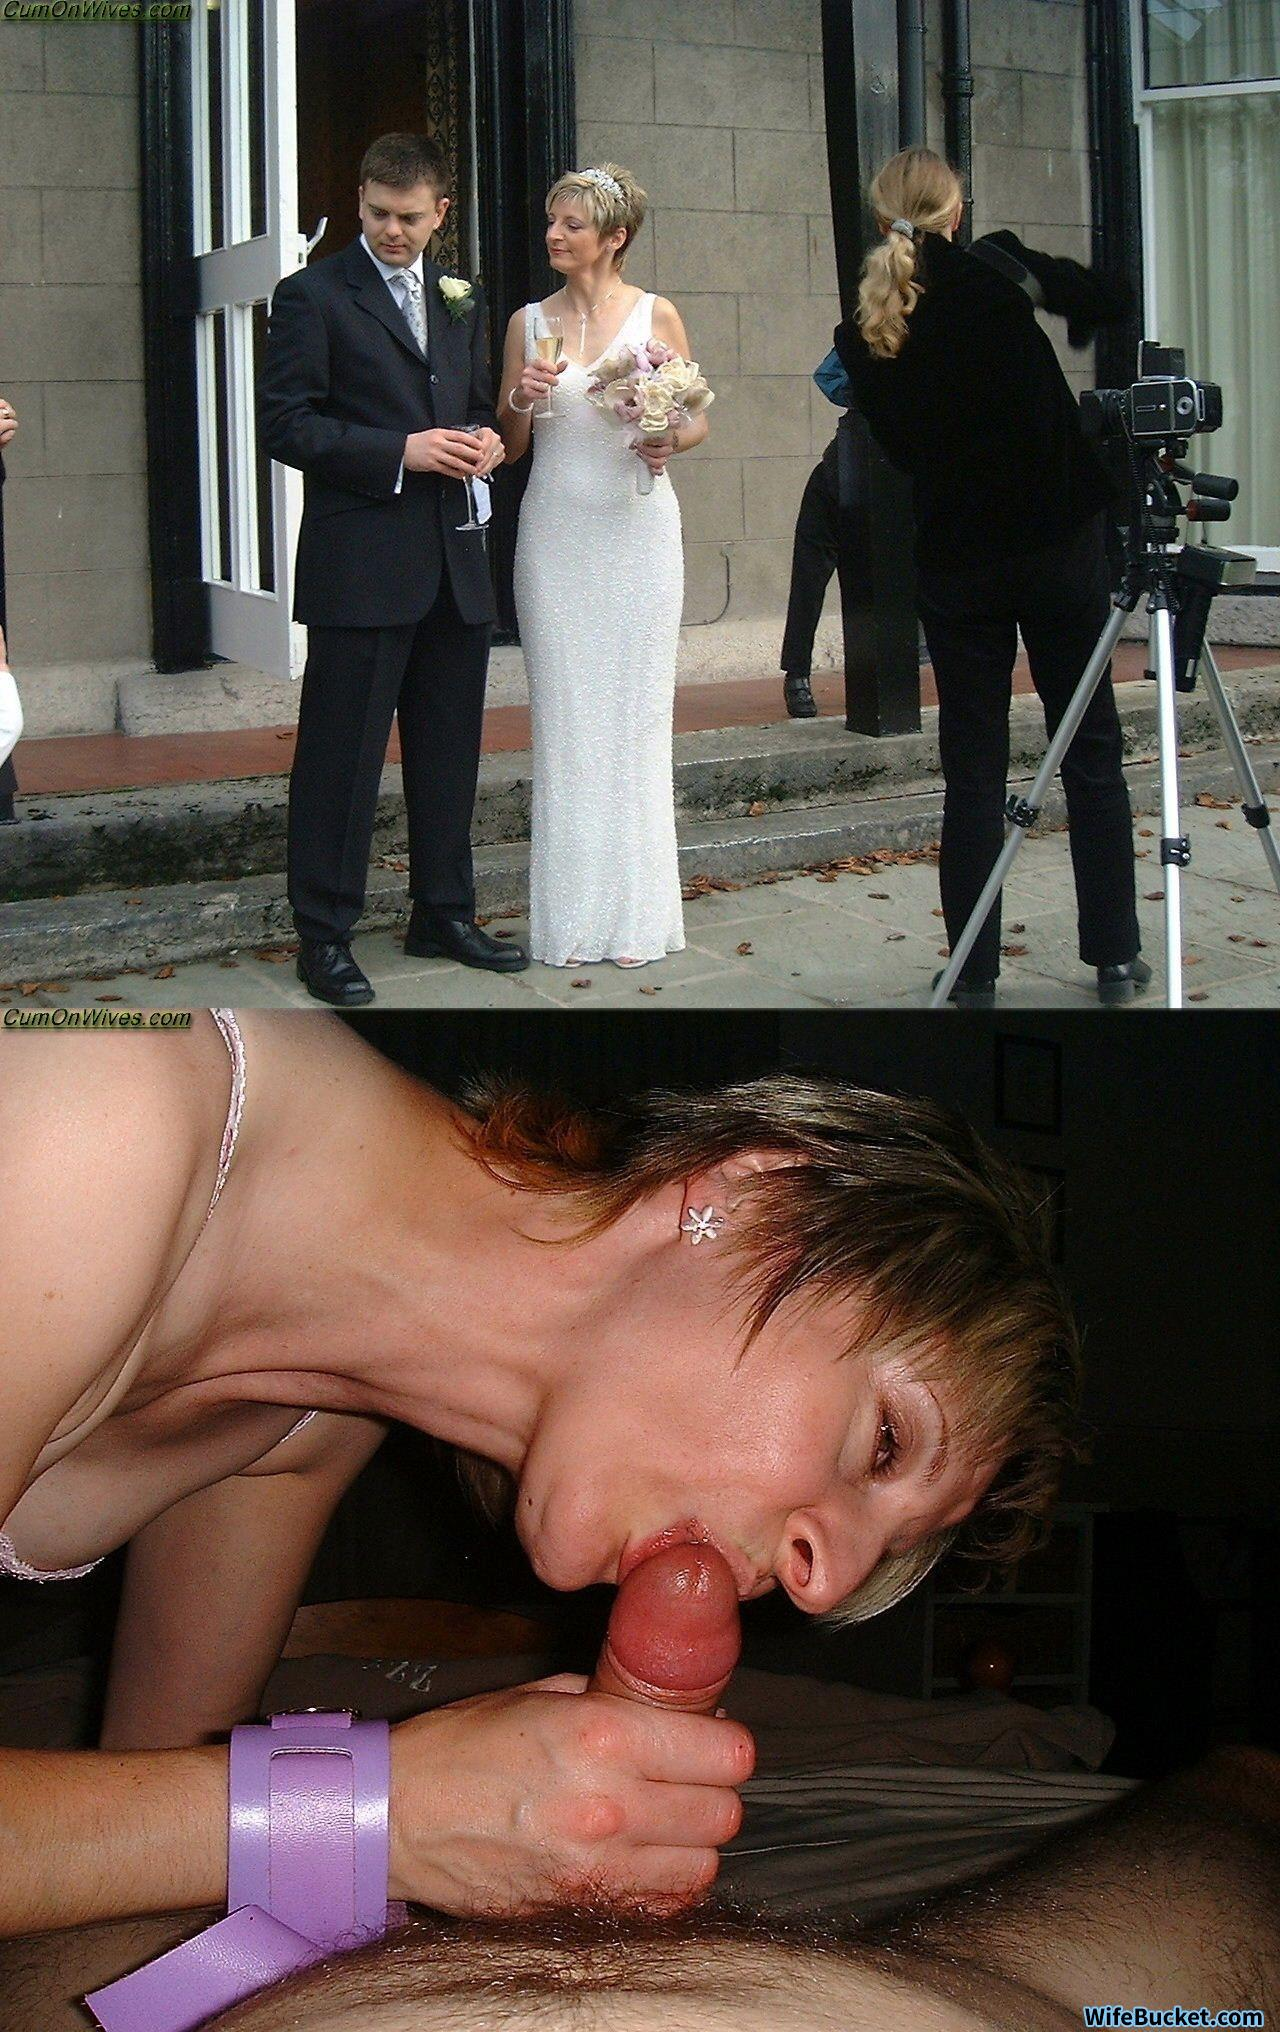 before-after sex pics